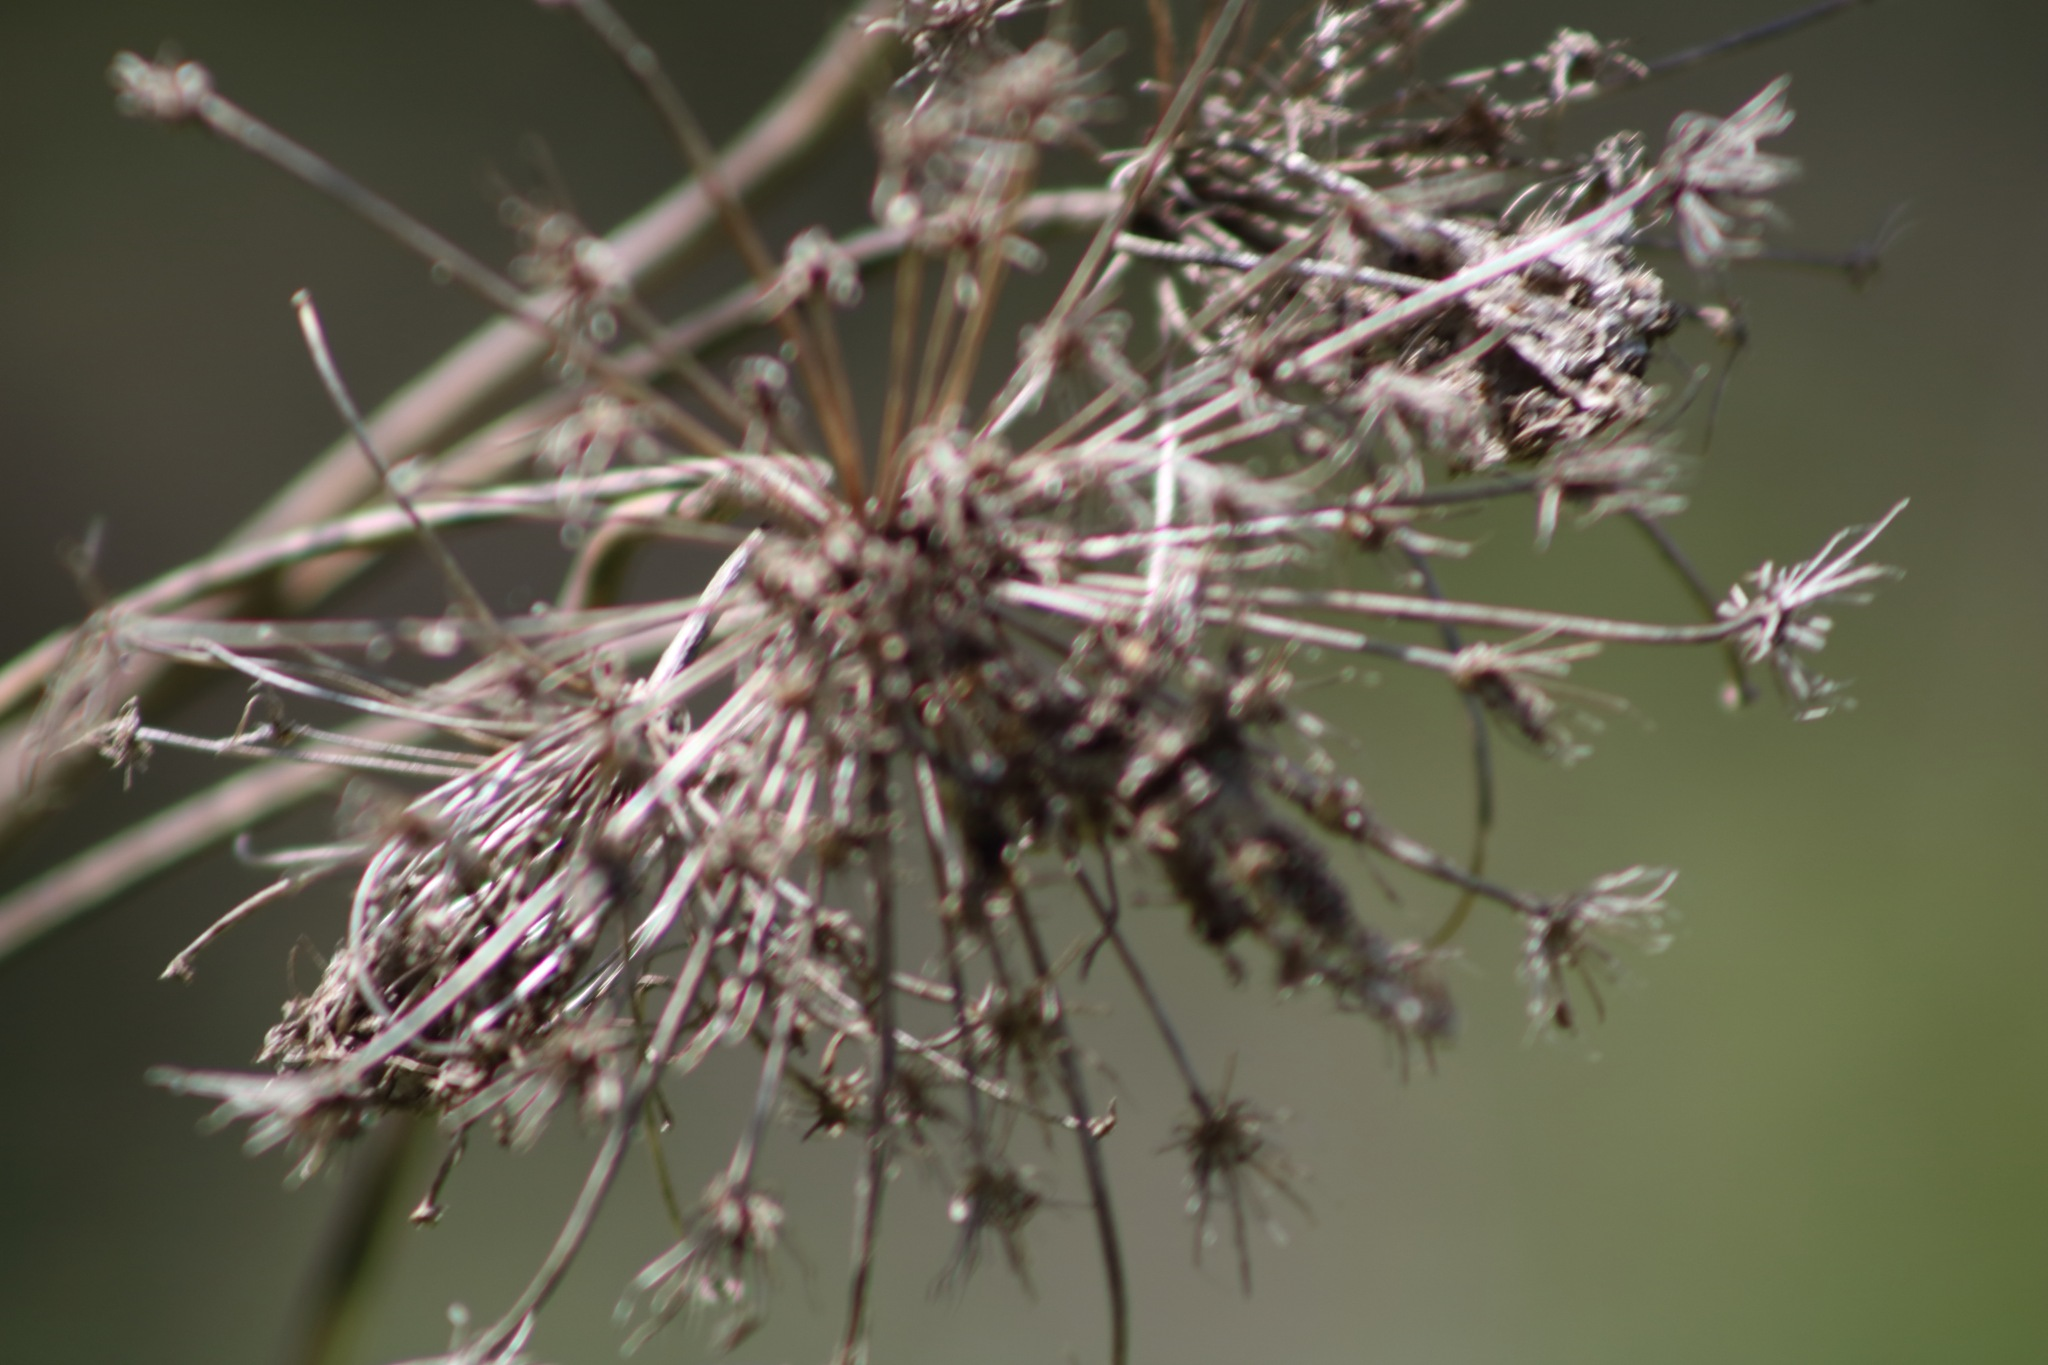 dried weed by Peter O Merz